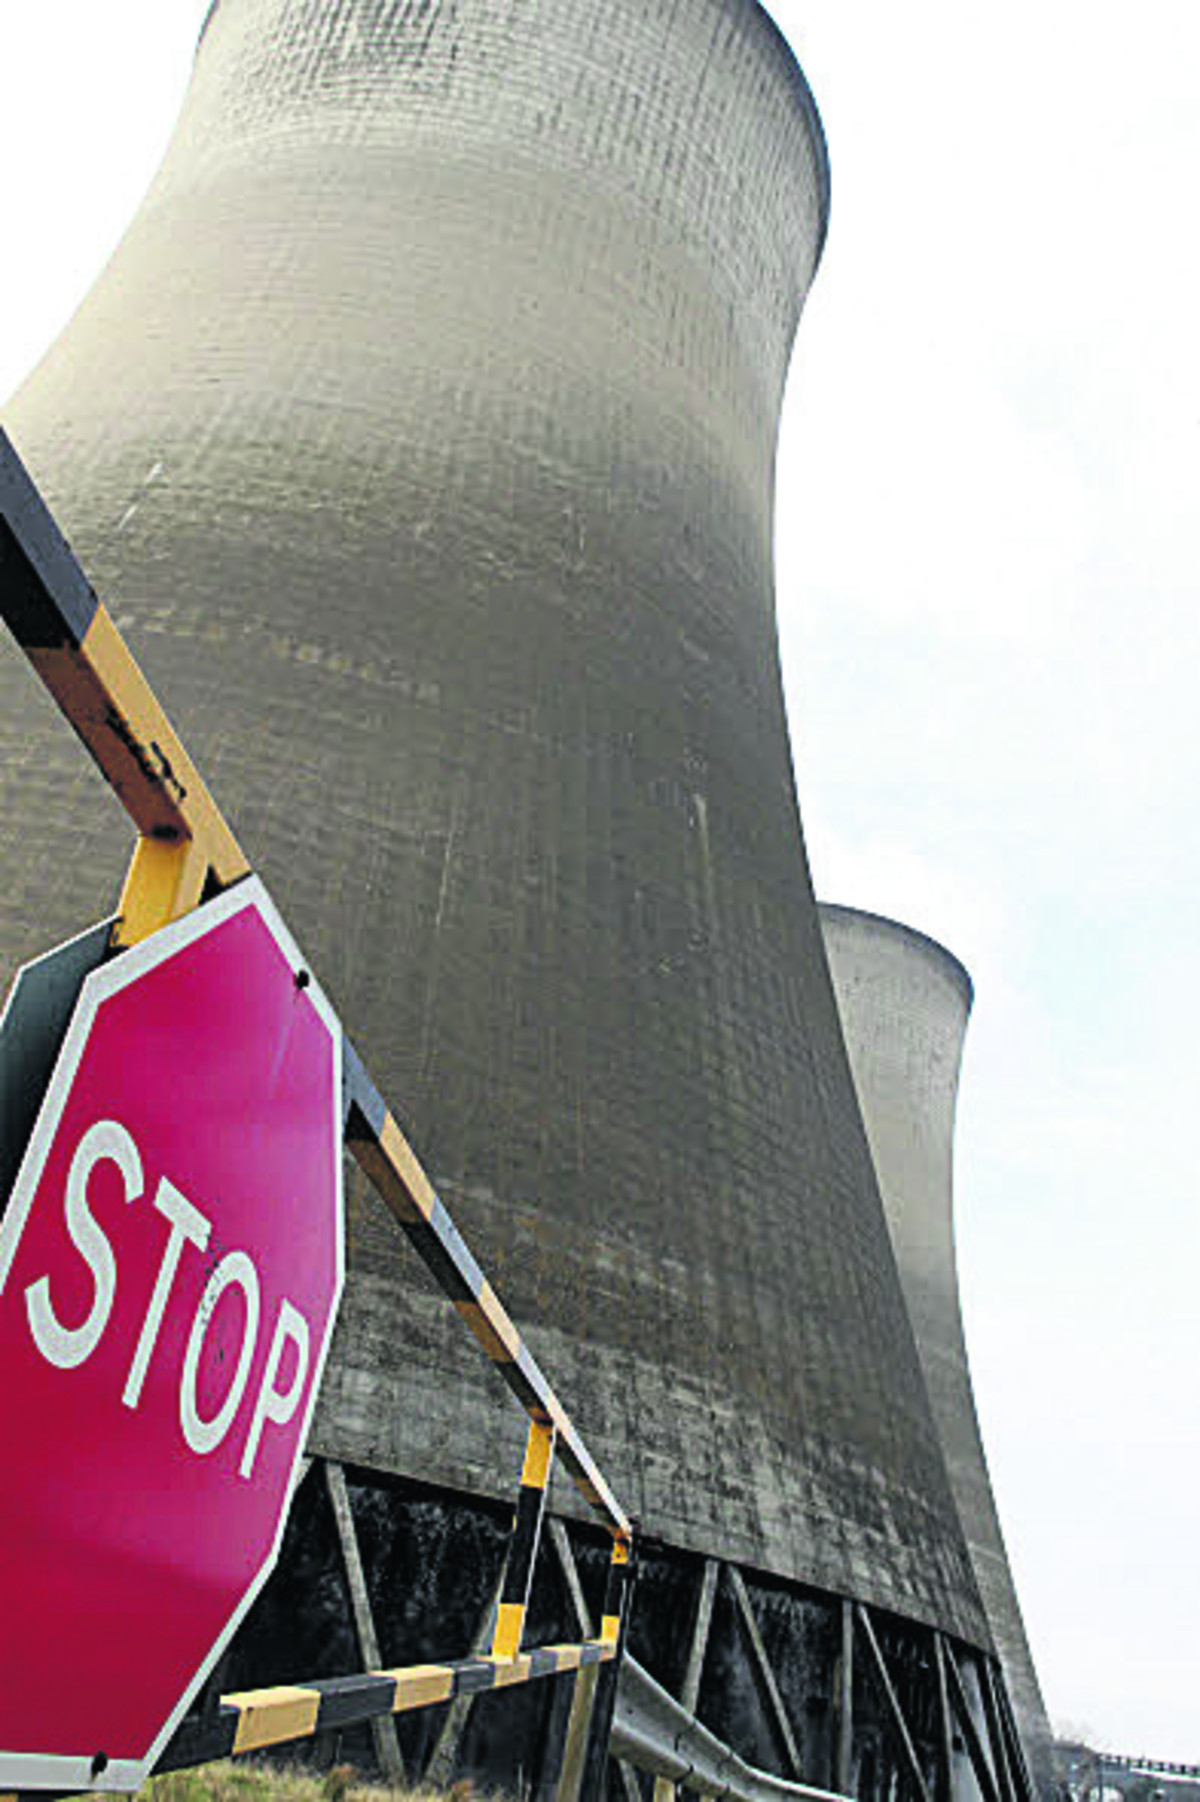 Developer Cowes buys part of Didcot A power station